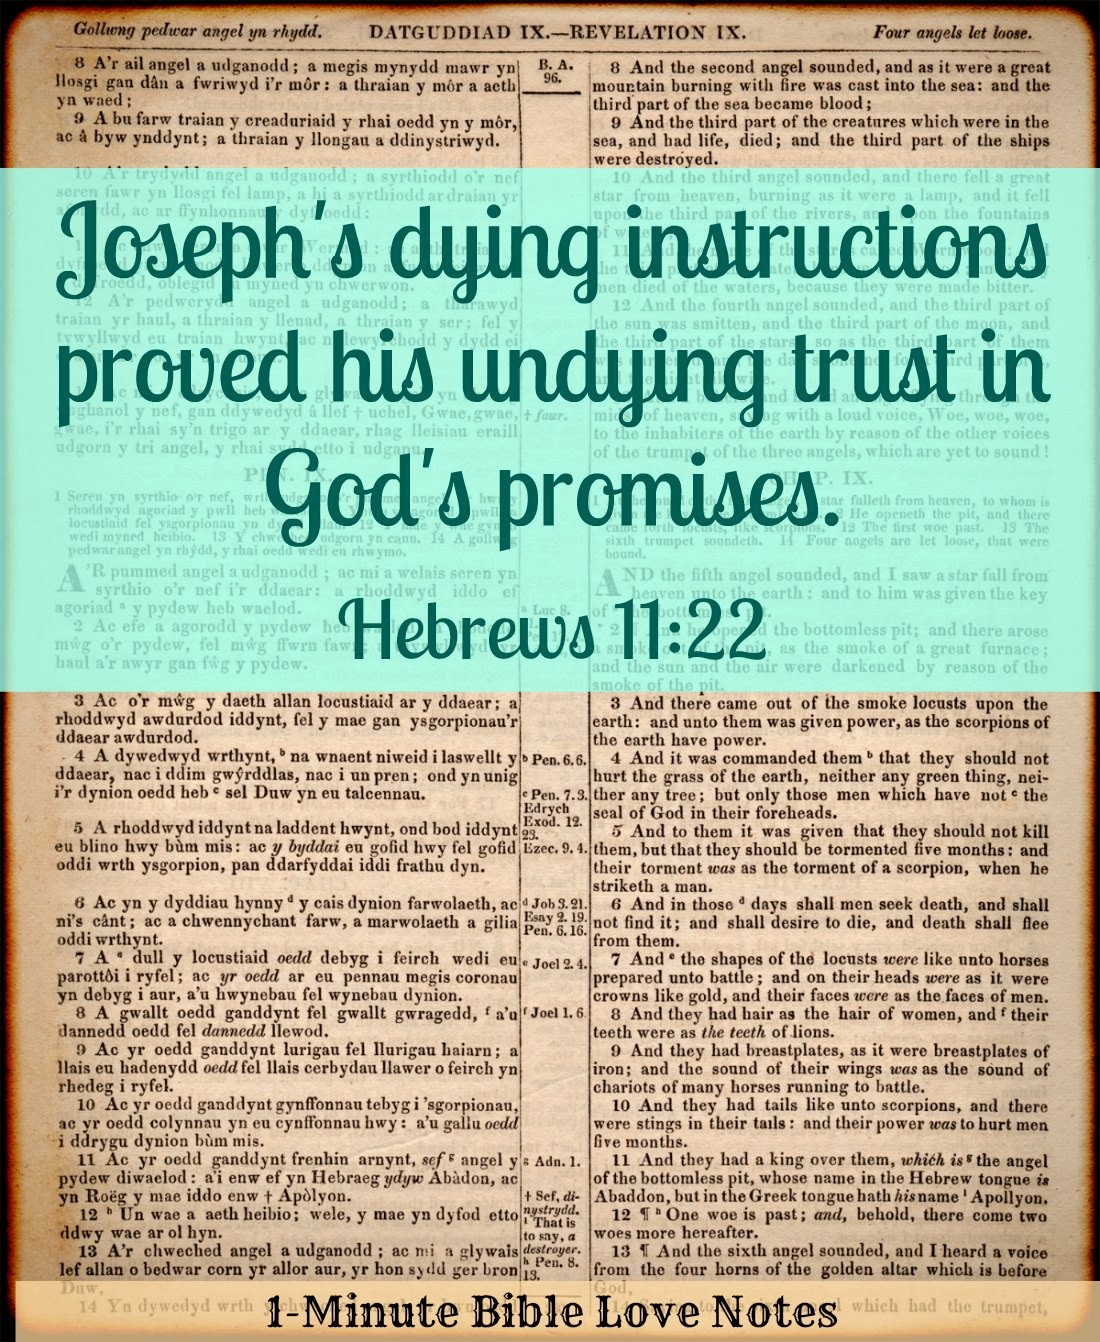 Hebrews 11:22, Joseph's dying words